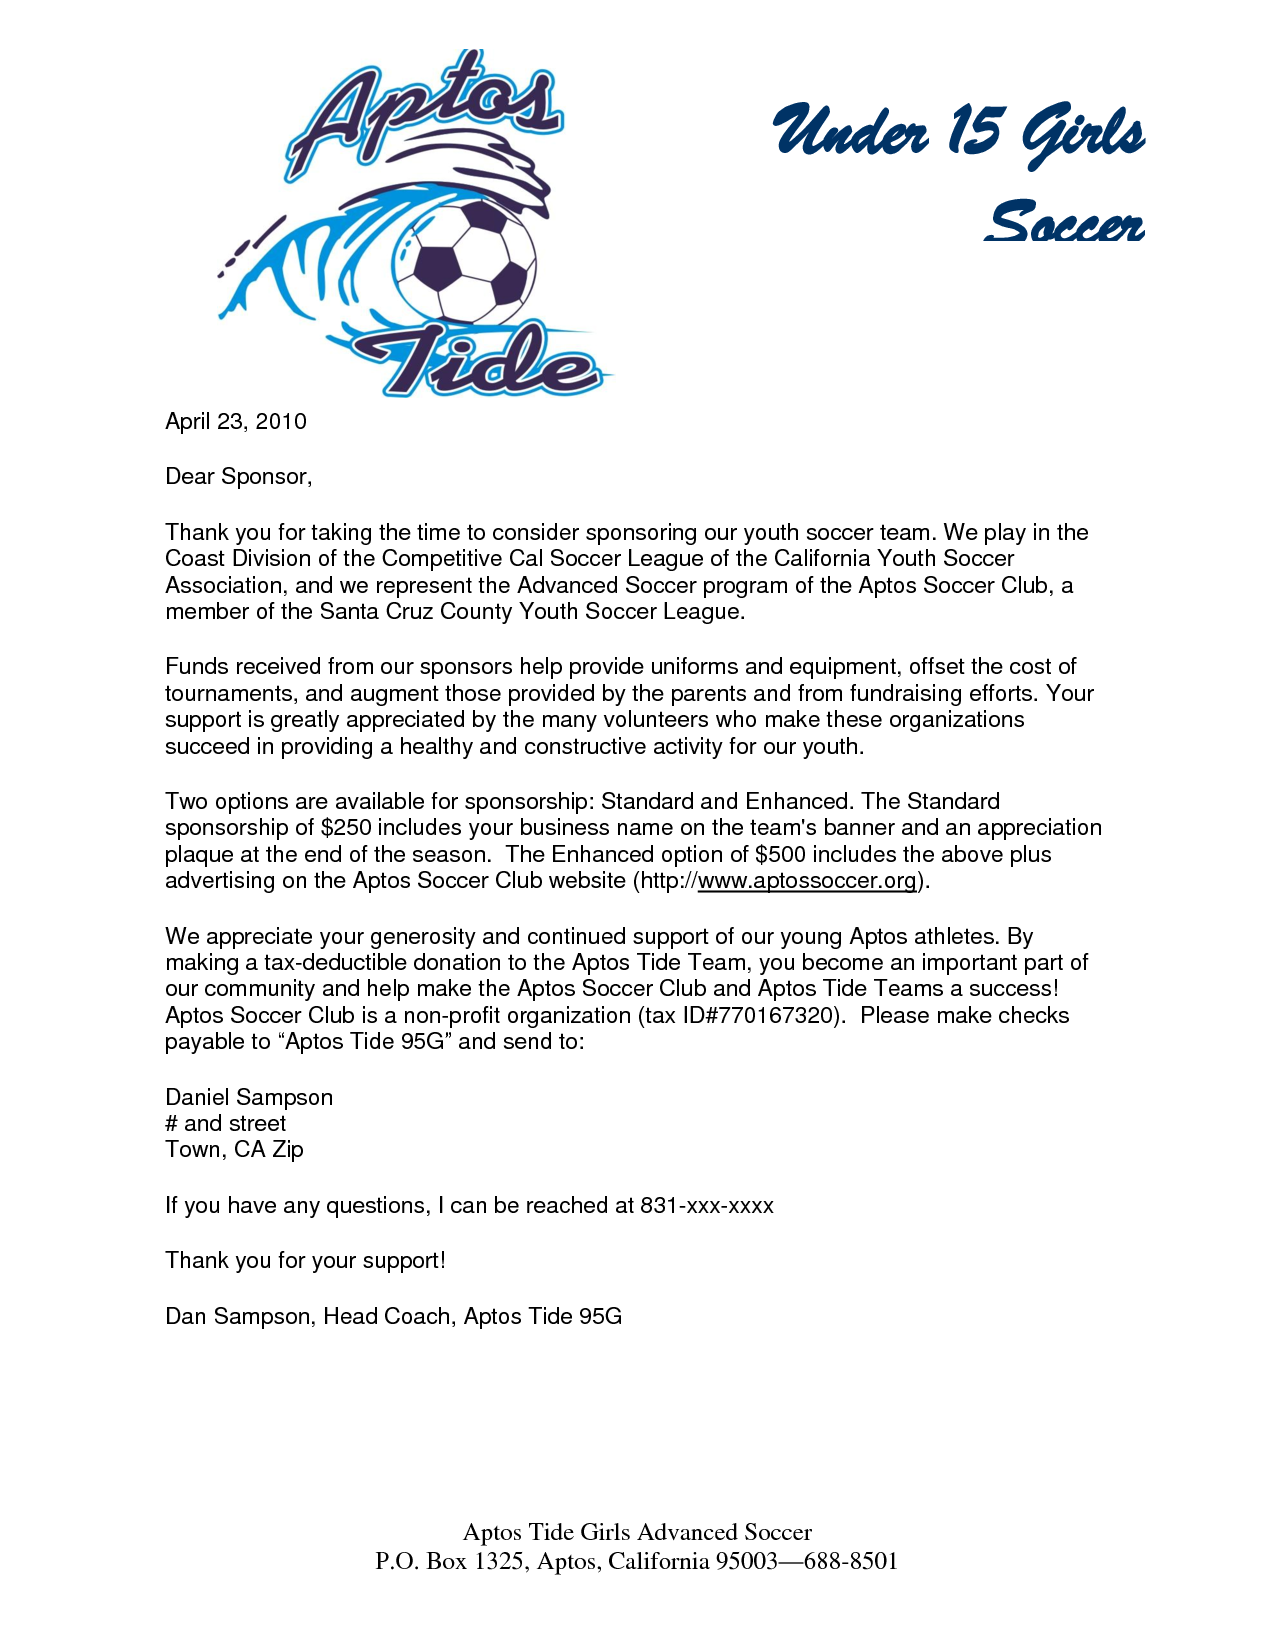 sample sponsorship proposal letter for events word doc. funding ...